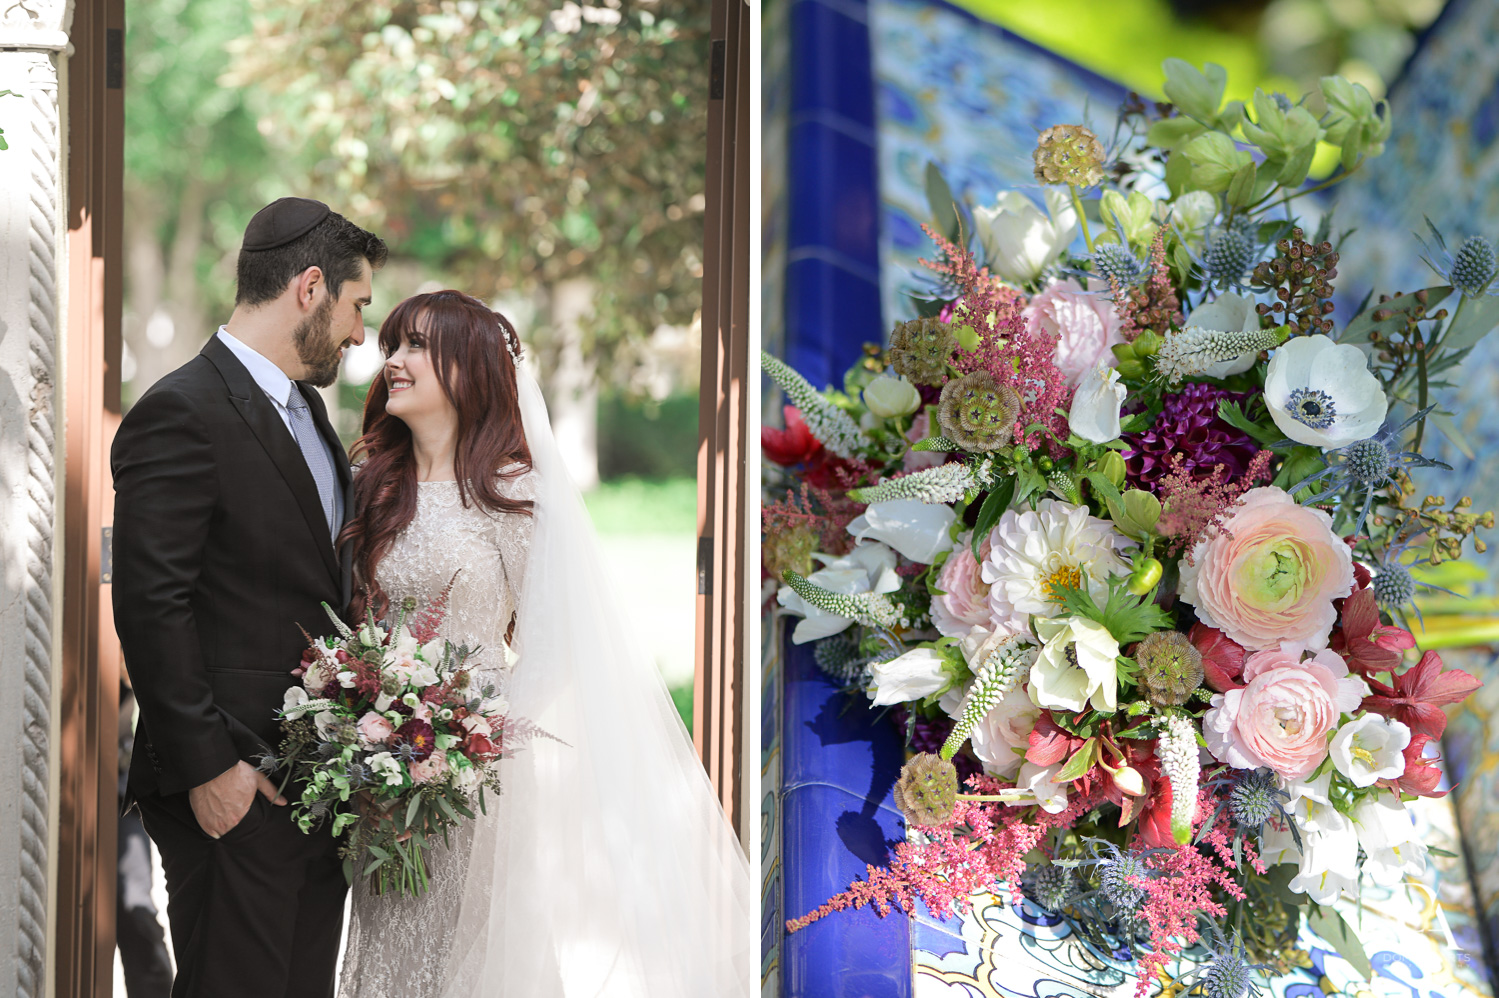 couple and bouquet at Vintage Garden Wedding at Flagler Museum Palm Beach by Domino Arts Photography